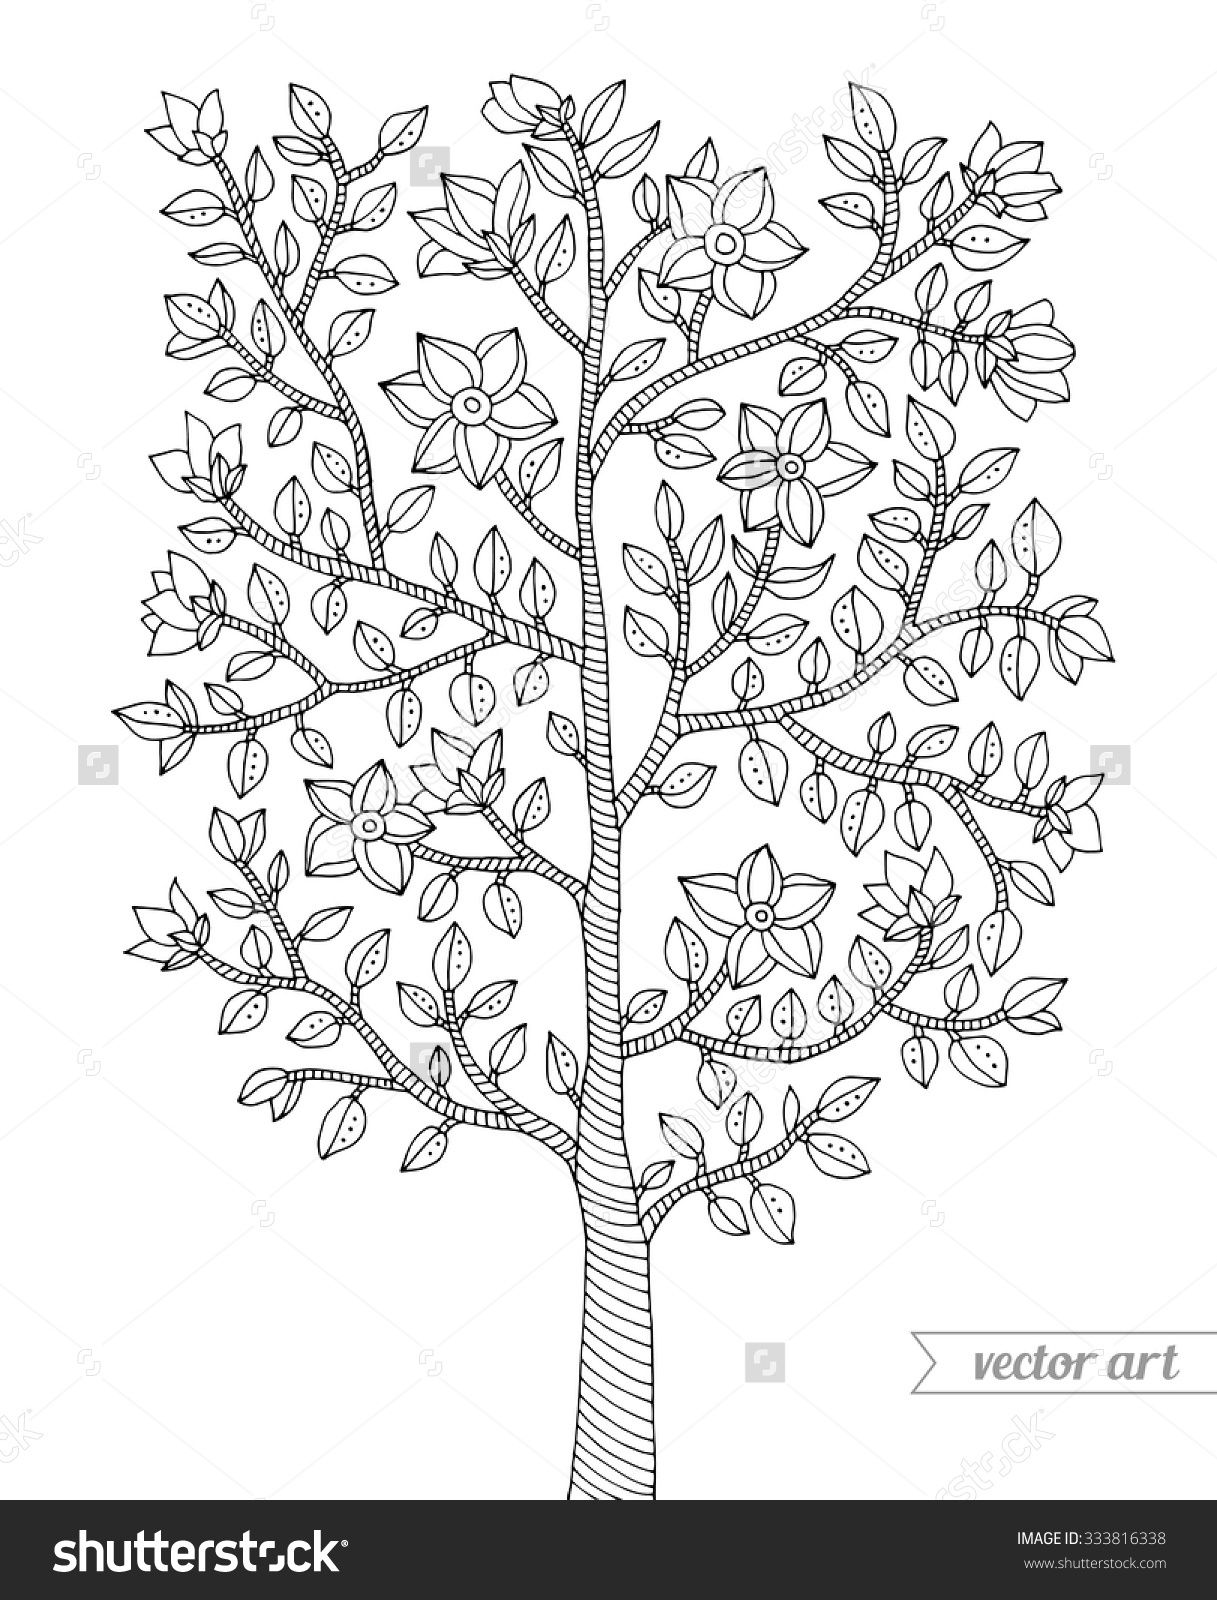 Inspirational Coloring Pages Trees Plants And Flowers